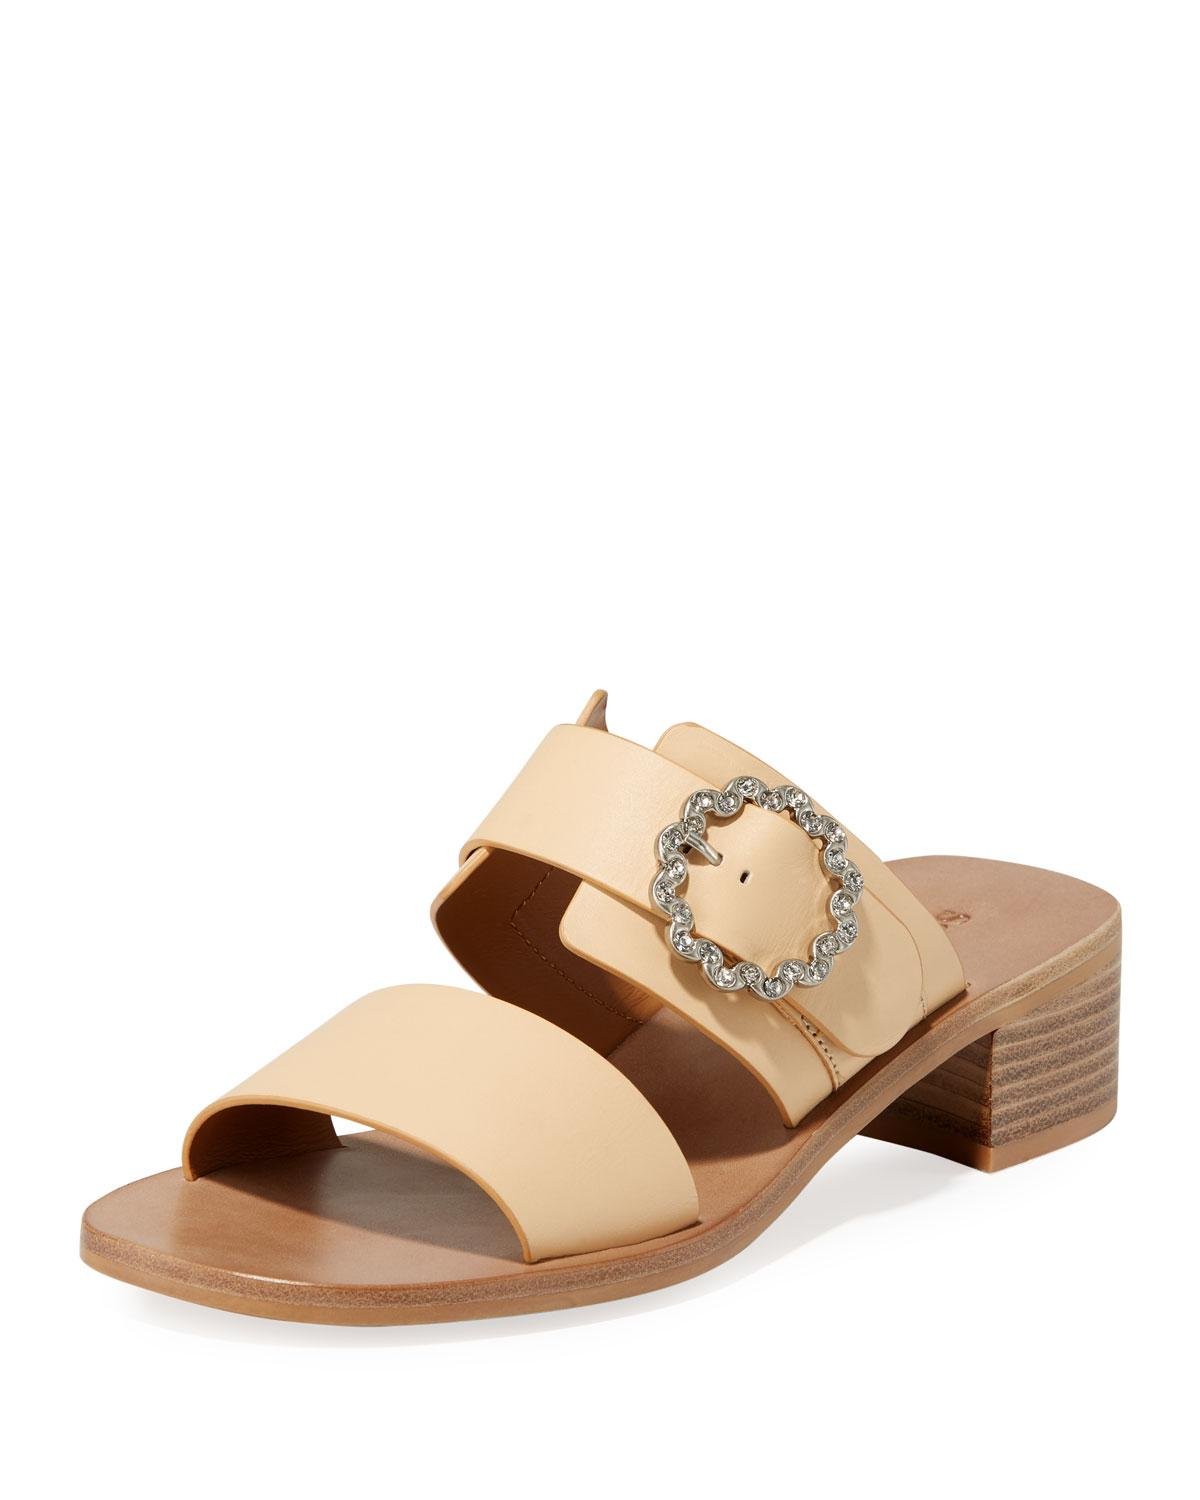 0094c7a1ce4 Lyst - See By Chloé Kristen Block-heel Leather Slide Sandals in Natural